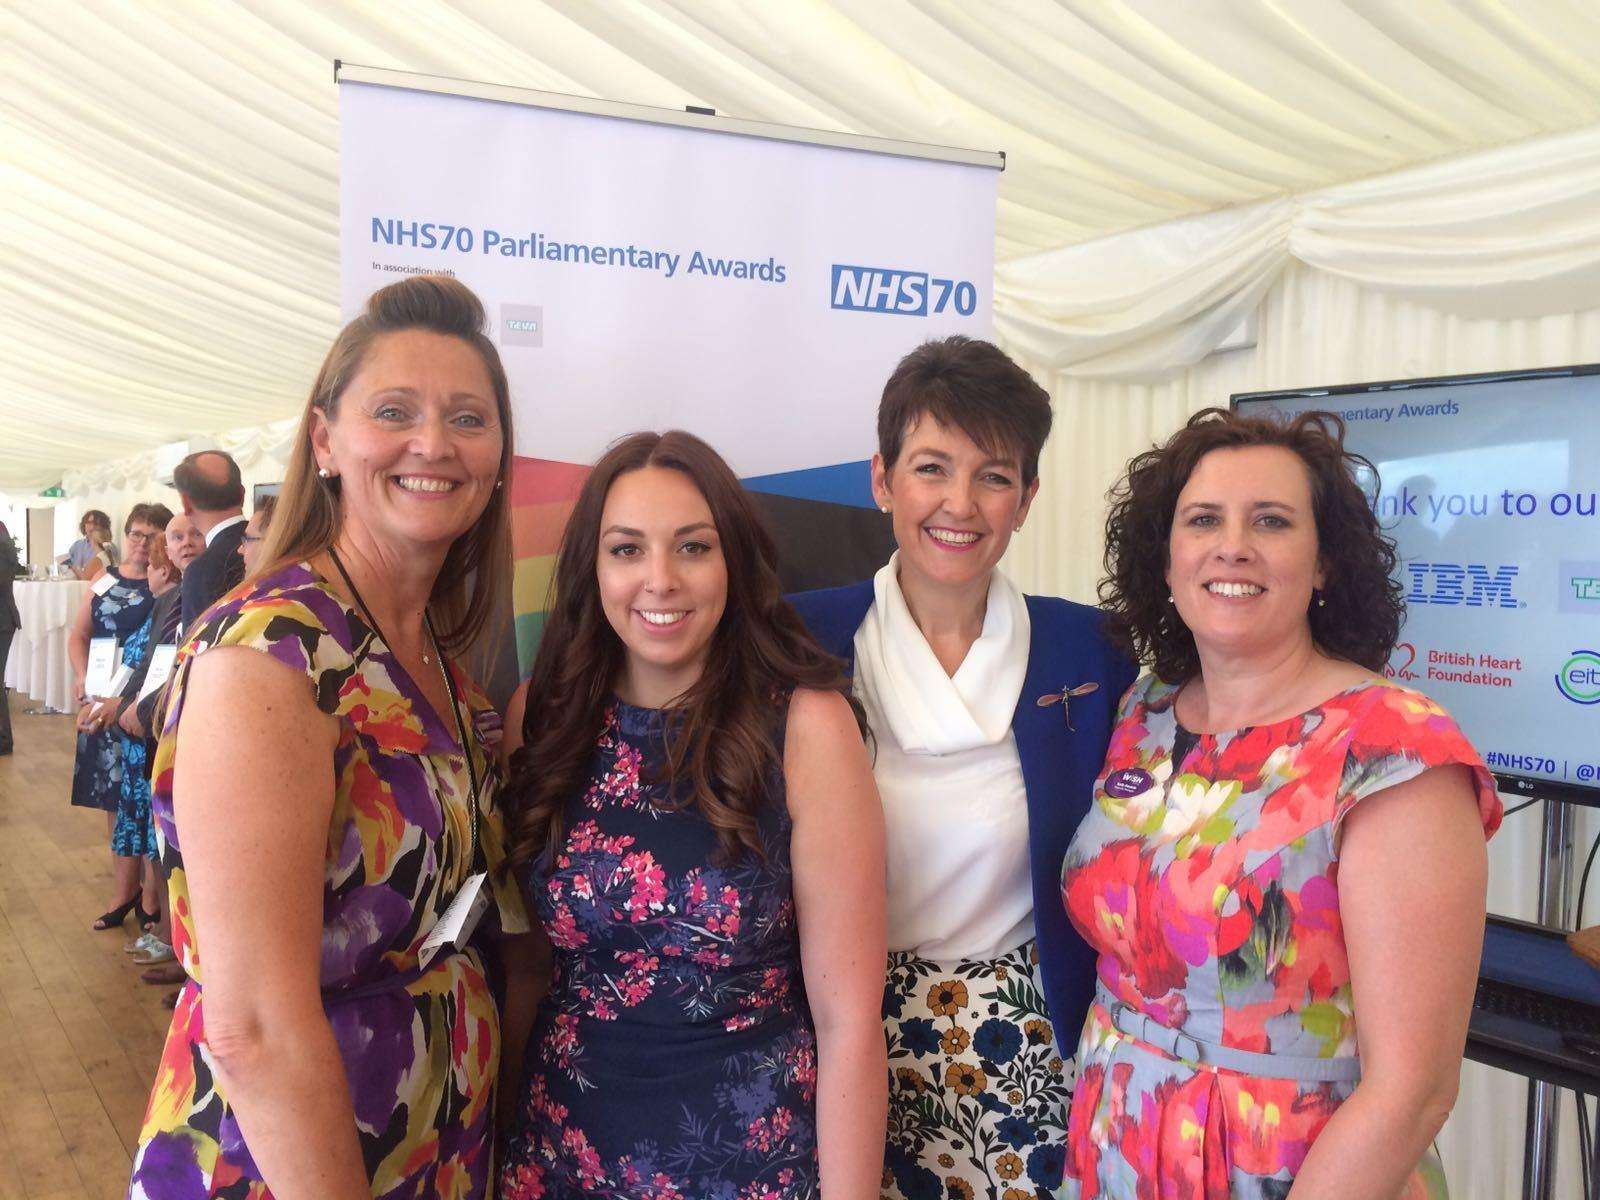 Sue Smith, fundraising manager at My WiSH Charity, Amy Hatch, fundraising officer My WiSH Charity, Jo Churchill MP for Bury St Edmunds, Sally Daniels, appeal manager at My WiSH Charity at the NHS70 Parliamentary Awards. (2992610)